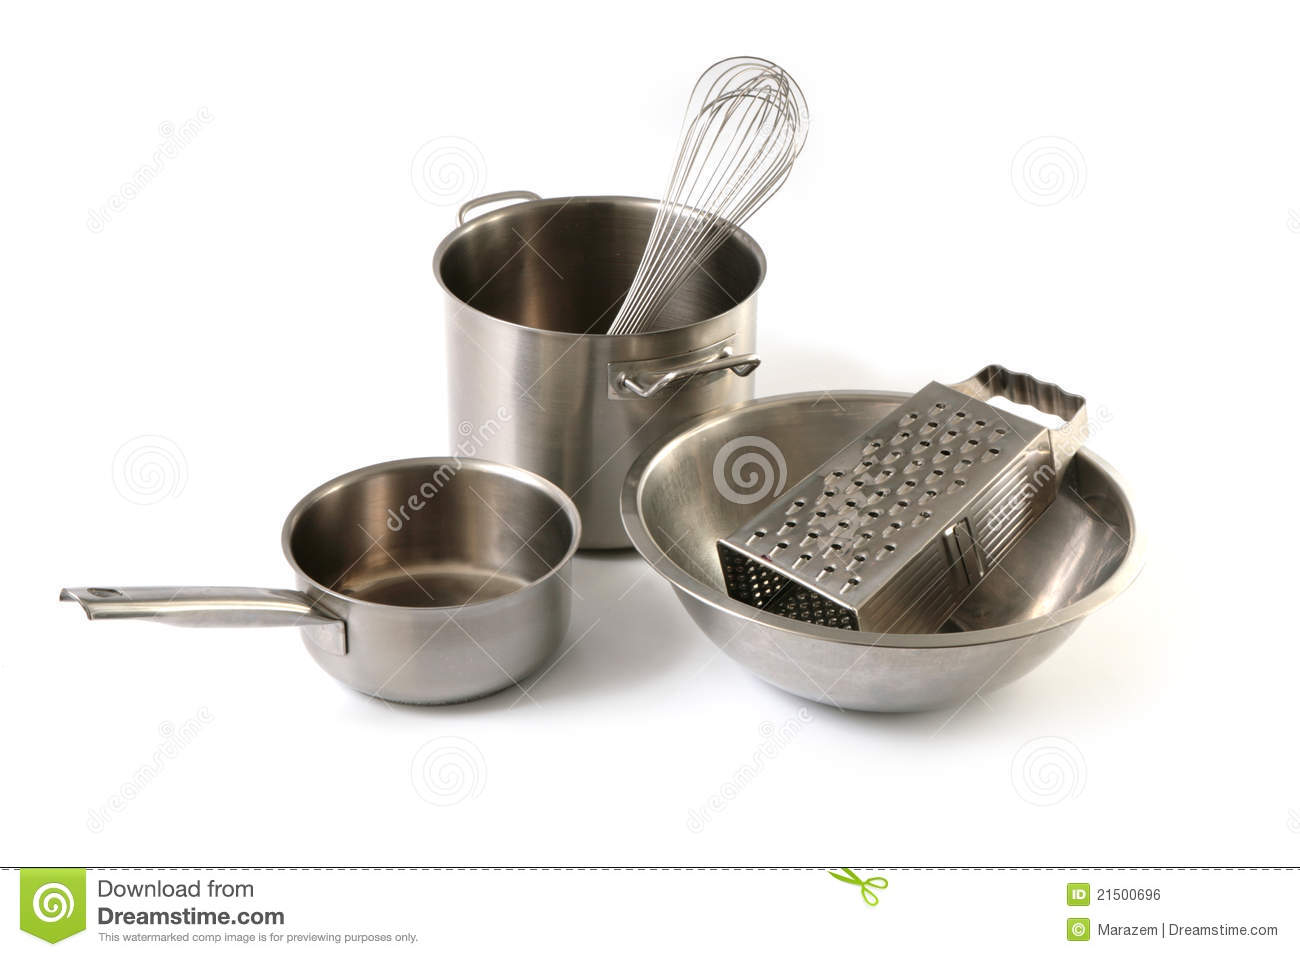 Kitchen Equipment kitchen equipment royalty free stock image - image: 21500696